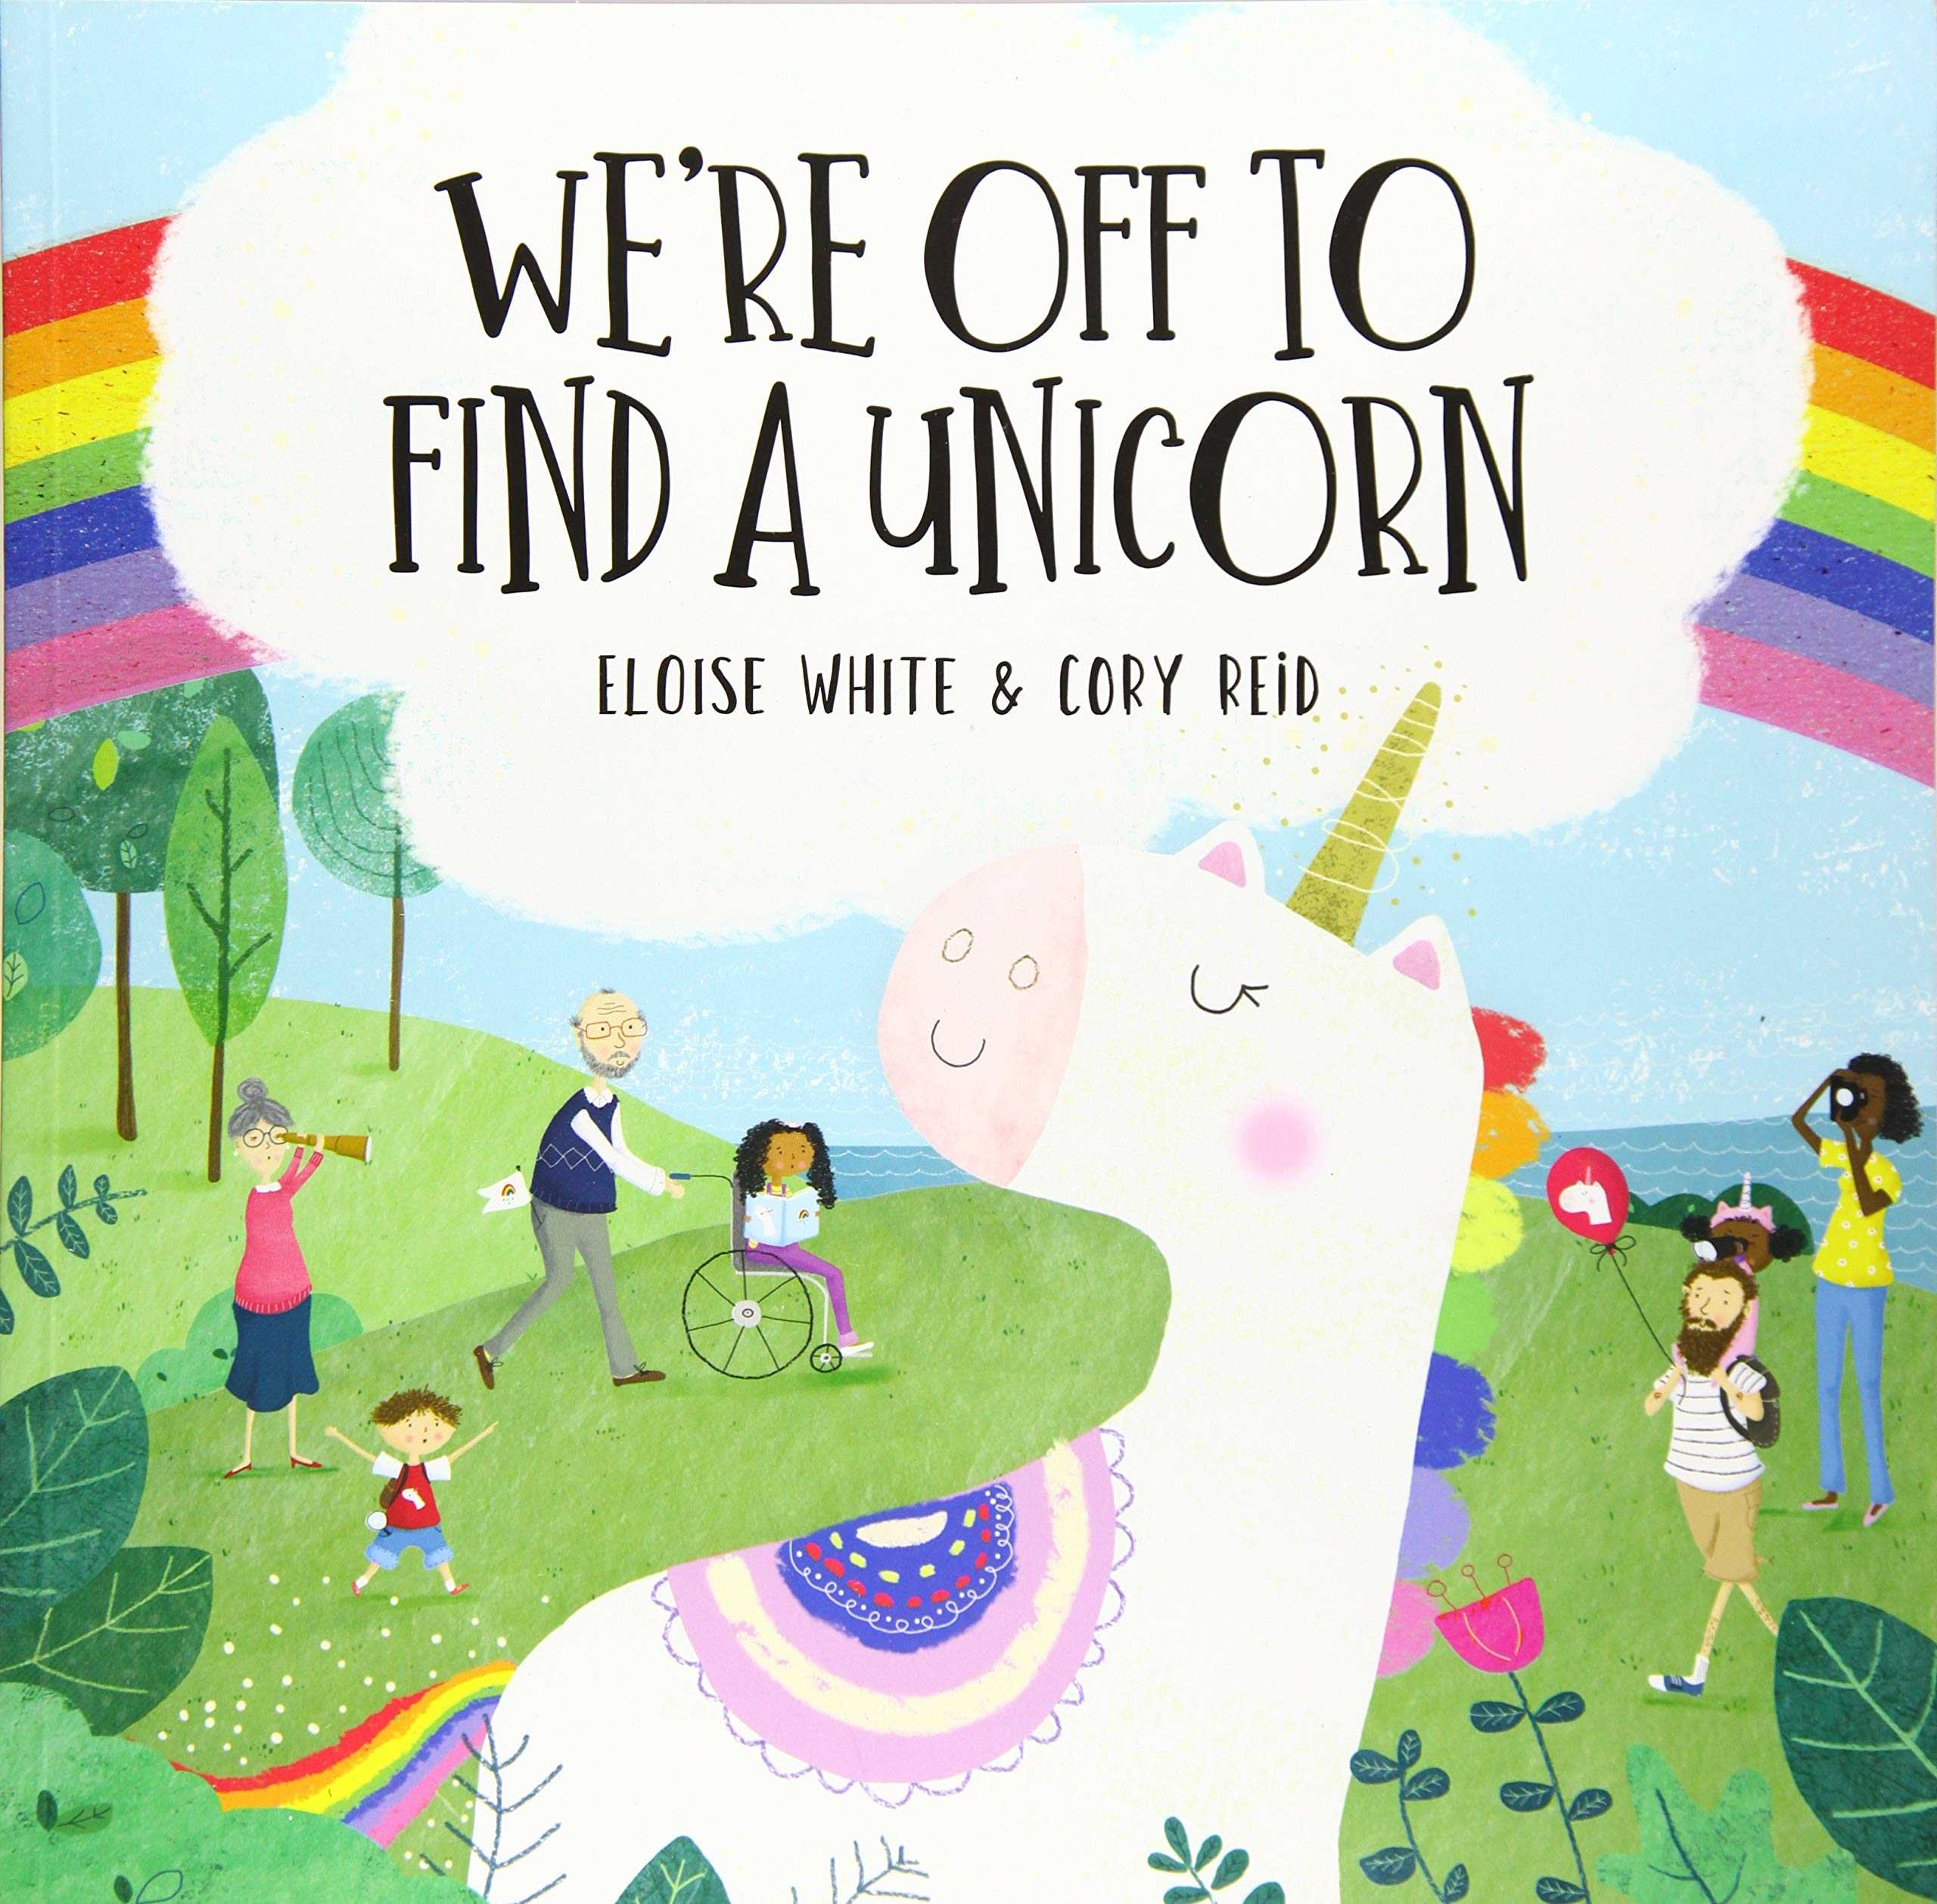 We're Off to Find a Unicorn